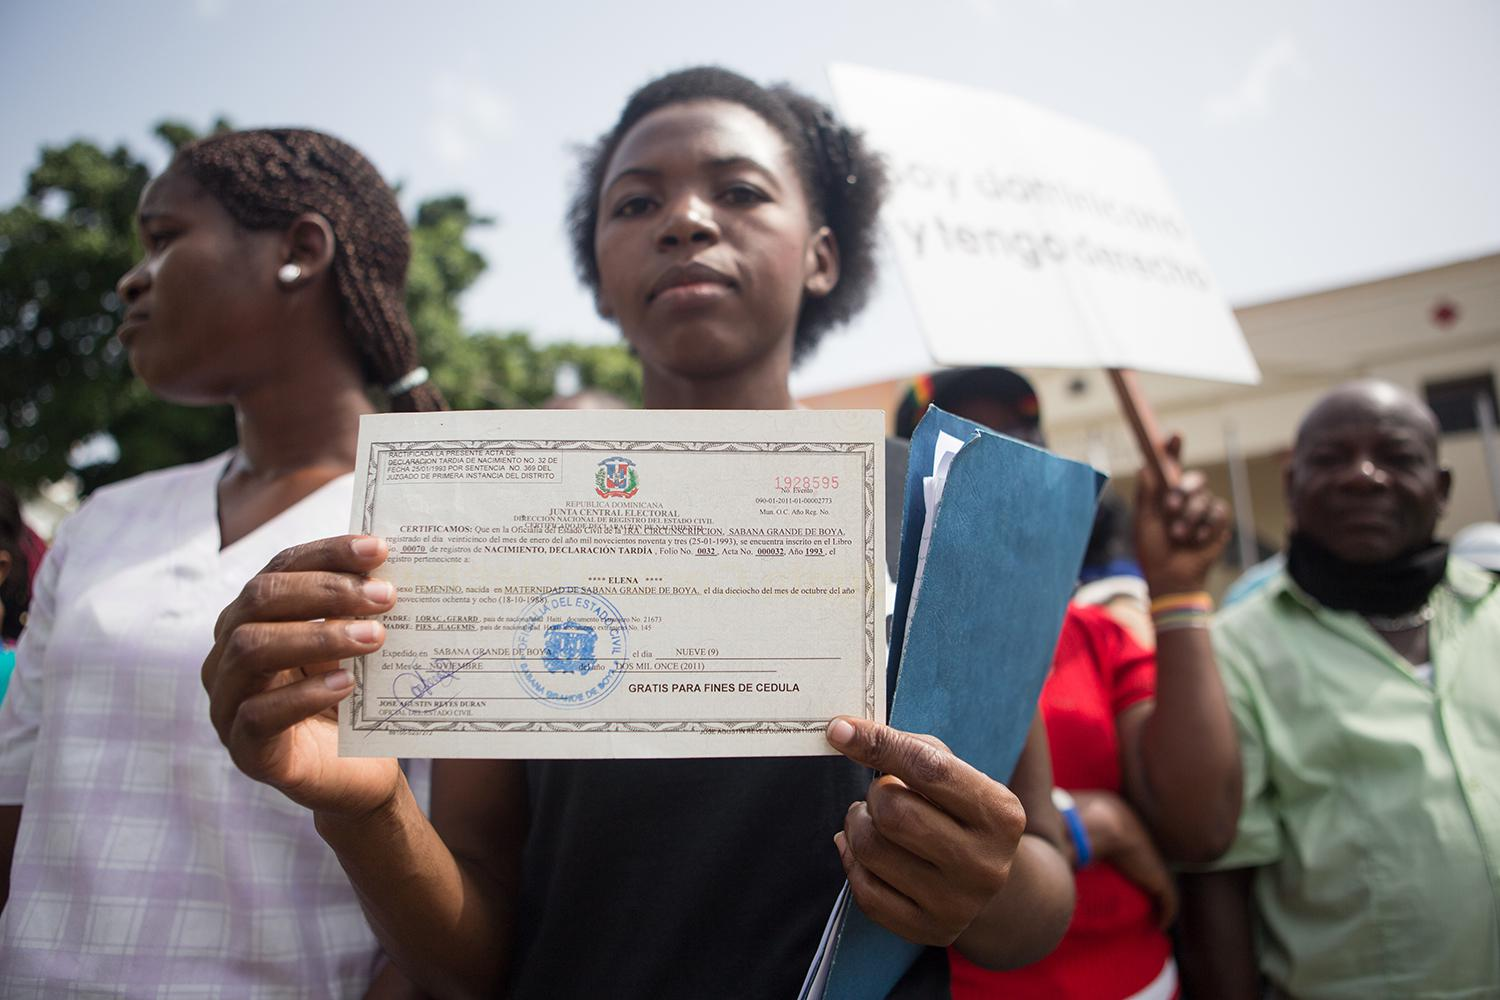 Elena Lorac, a spokesperson from the Reconoci.do movement, shows a birth certificate issued by the Central Electoral Board, during a rally in front of the Presidential Palace in Santo Domingo, July 12, 2013.